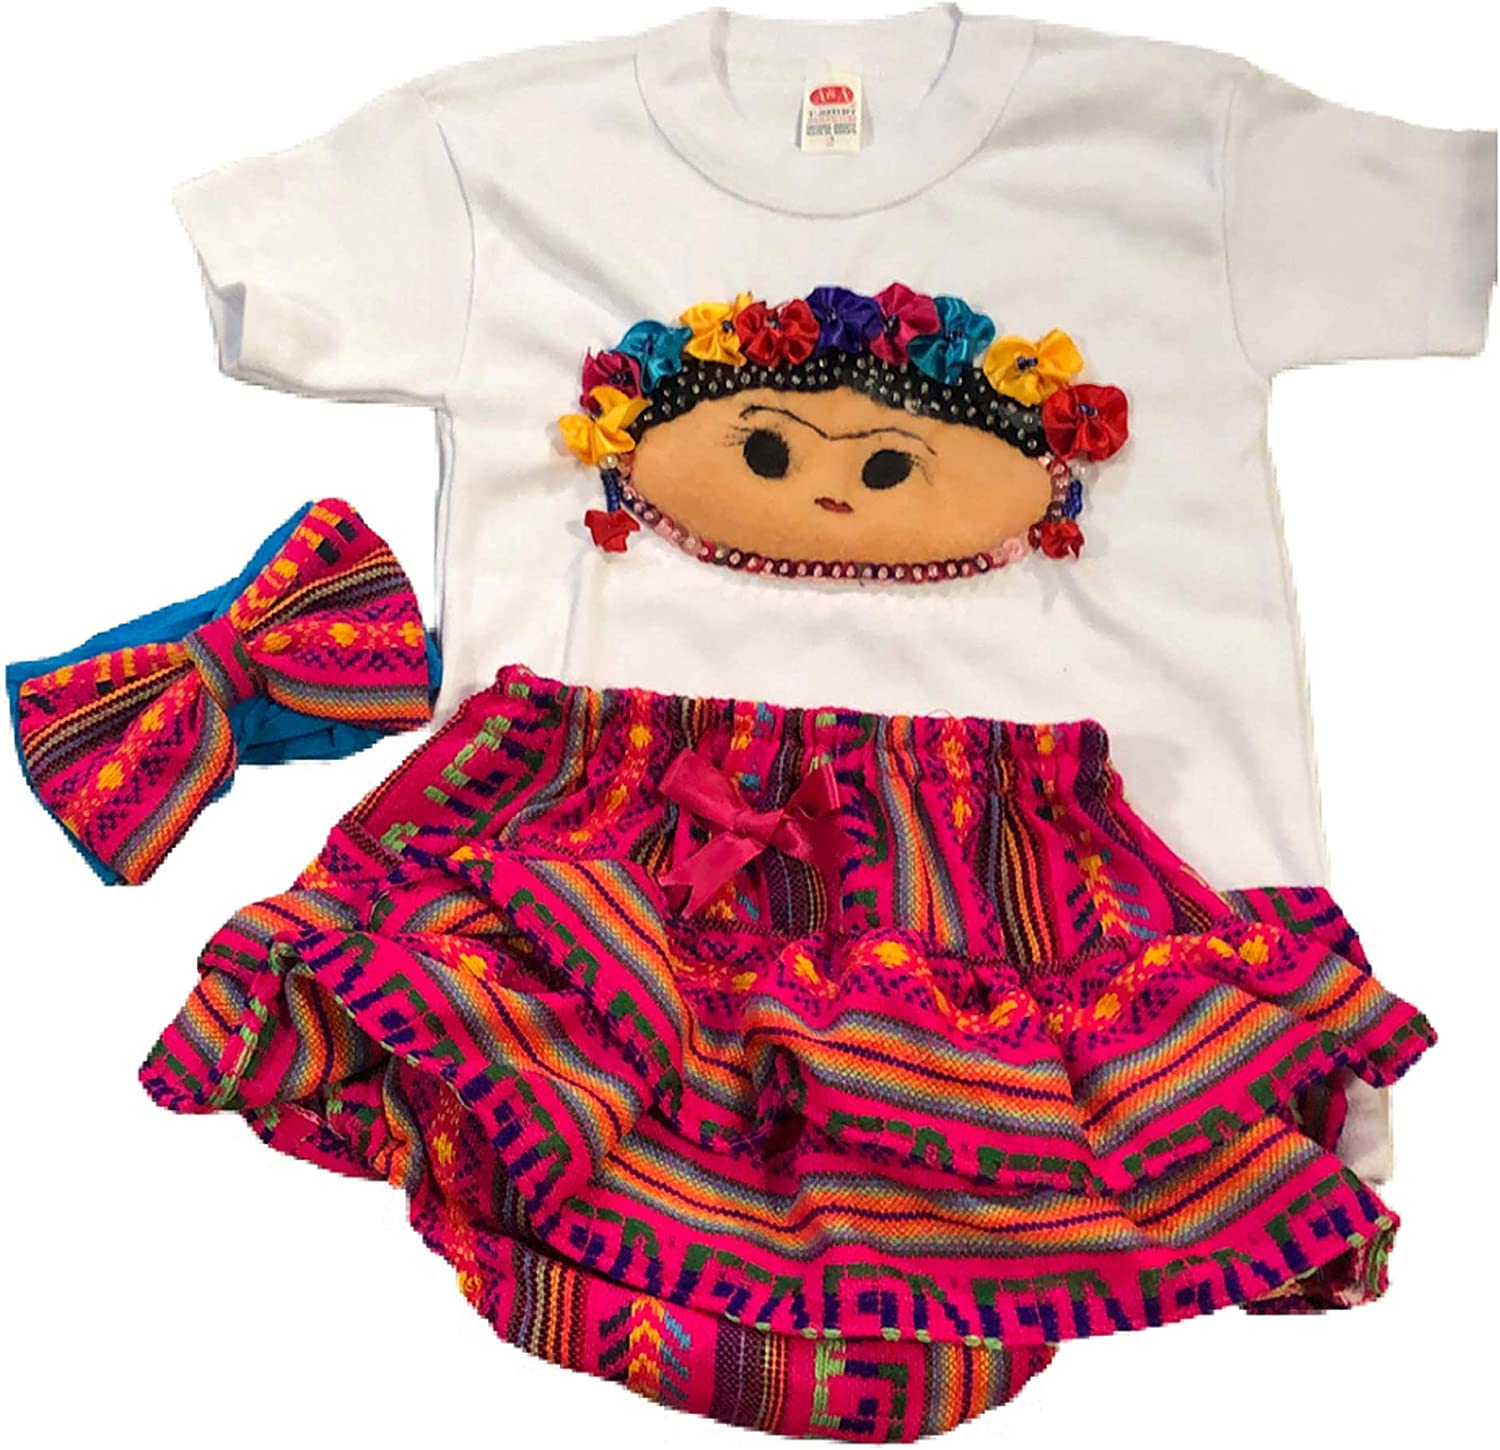 Mexican artisans Limited time sale Infant Bloomer or Diaper Size of Day 3 Set PC 2 Max 80% OFF